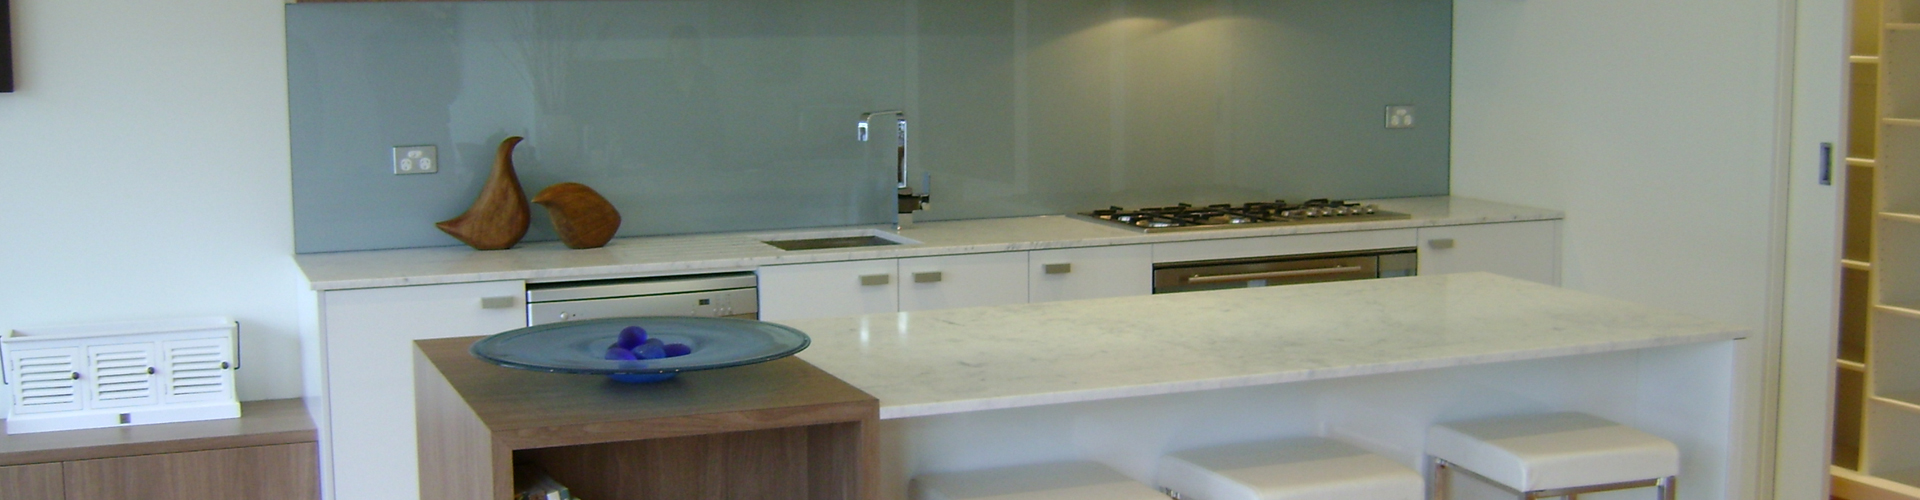 Kitchen Benchtops Melbourne New Benchtop Installations